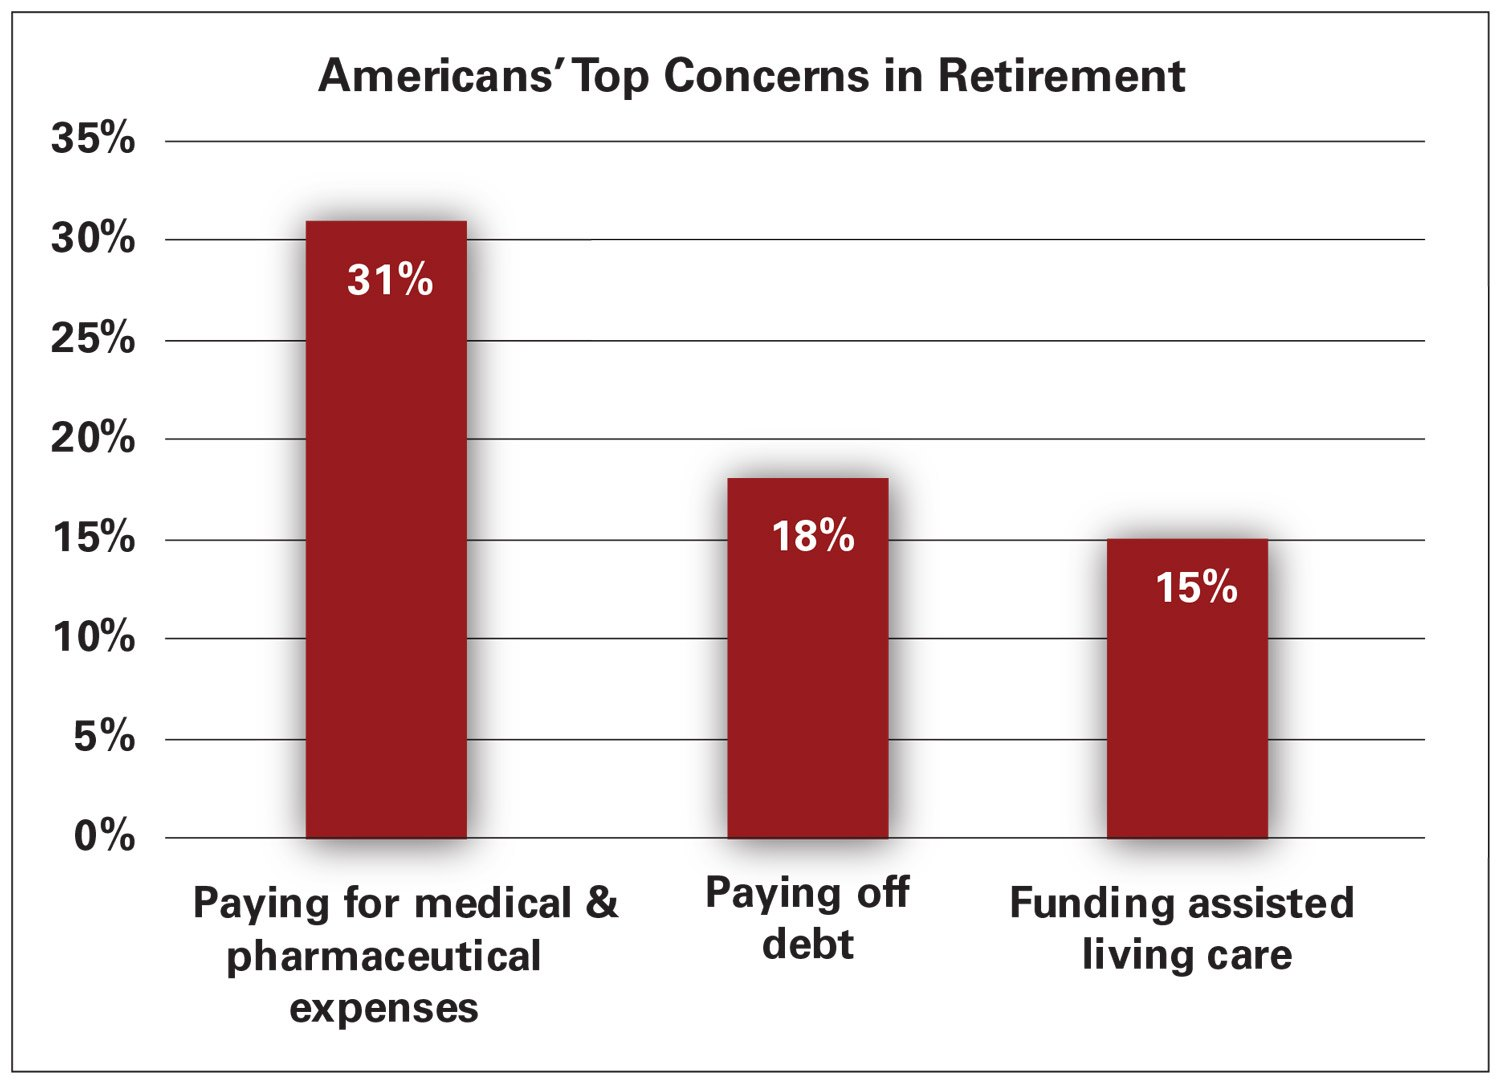 an analysis of the individual retirement accounts which offer several benefits Individual retirement accounts (iras)  no matter what your retirement strategy,  merrill edge® offers many types of accounts to help you make  features &  benefits:  each choice may offer different investment options and services, fees  and  usability, mobile, range of offerings, research amenities, portfolio  analysis.